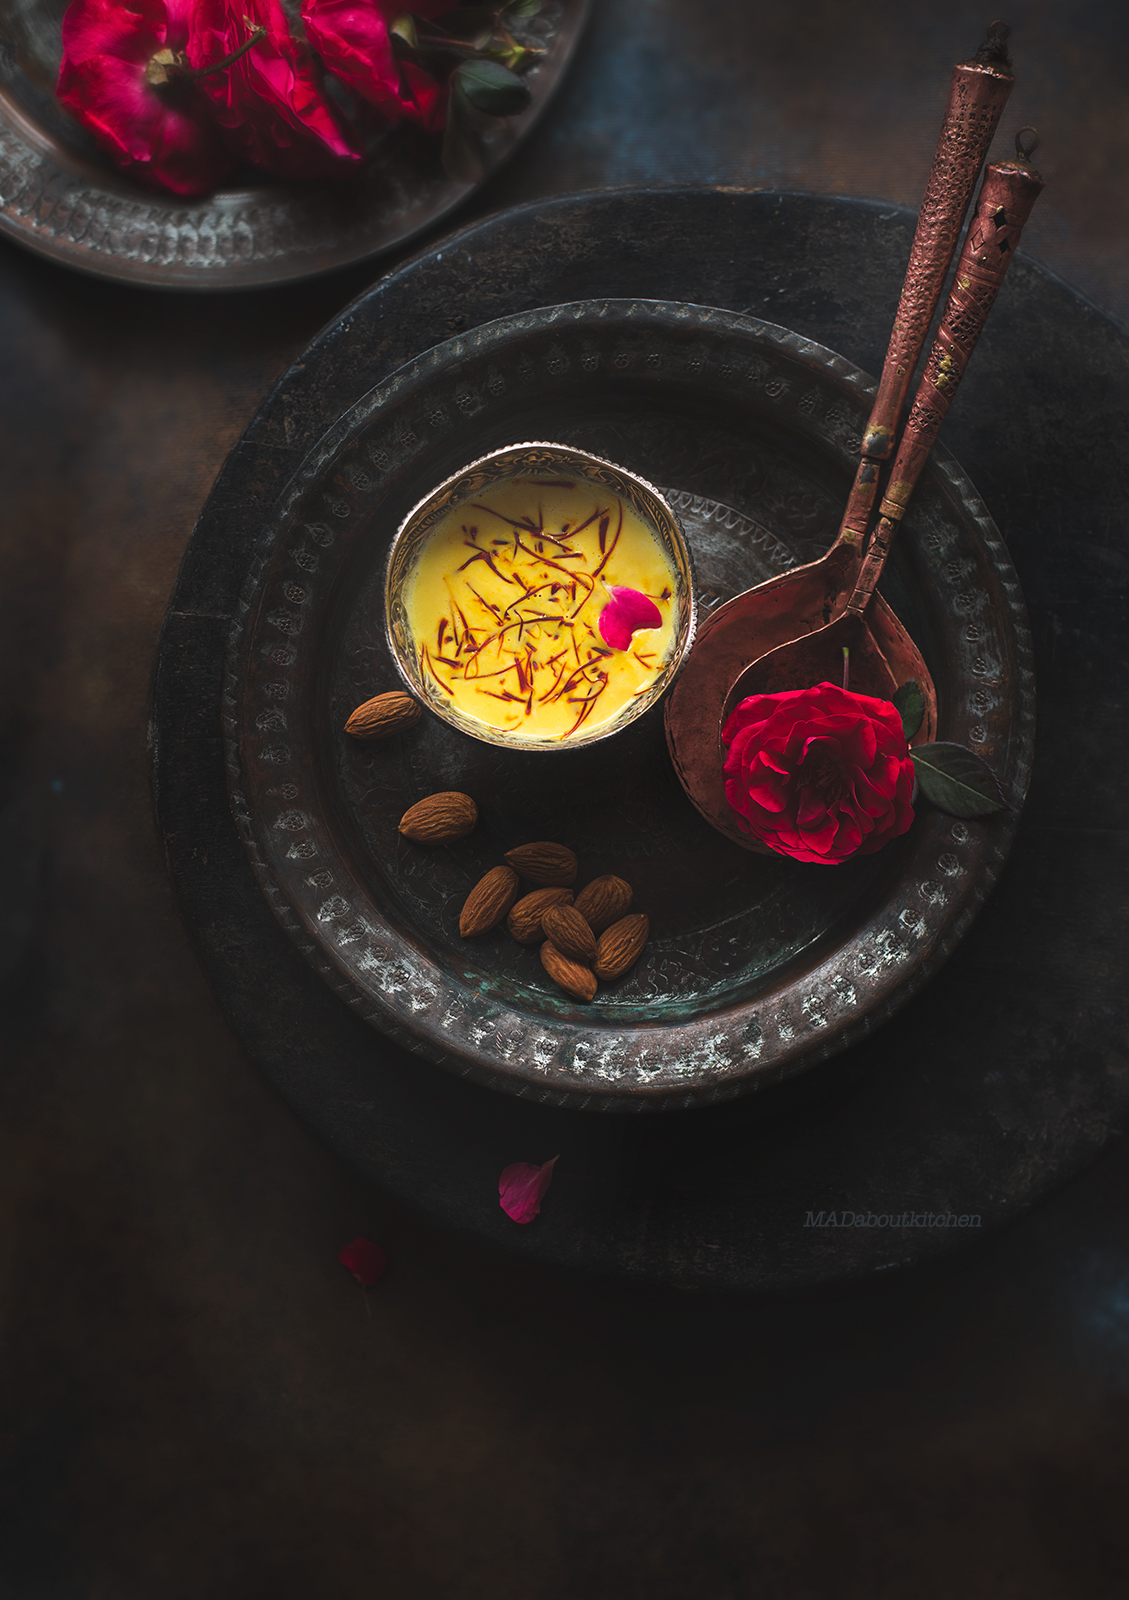 Rabdi, is an Indian dessert made by reducing whole milk to layers of cream. It is flavoured using saffron & is garnished with almonds & rose petals.